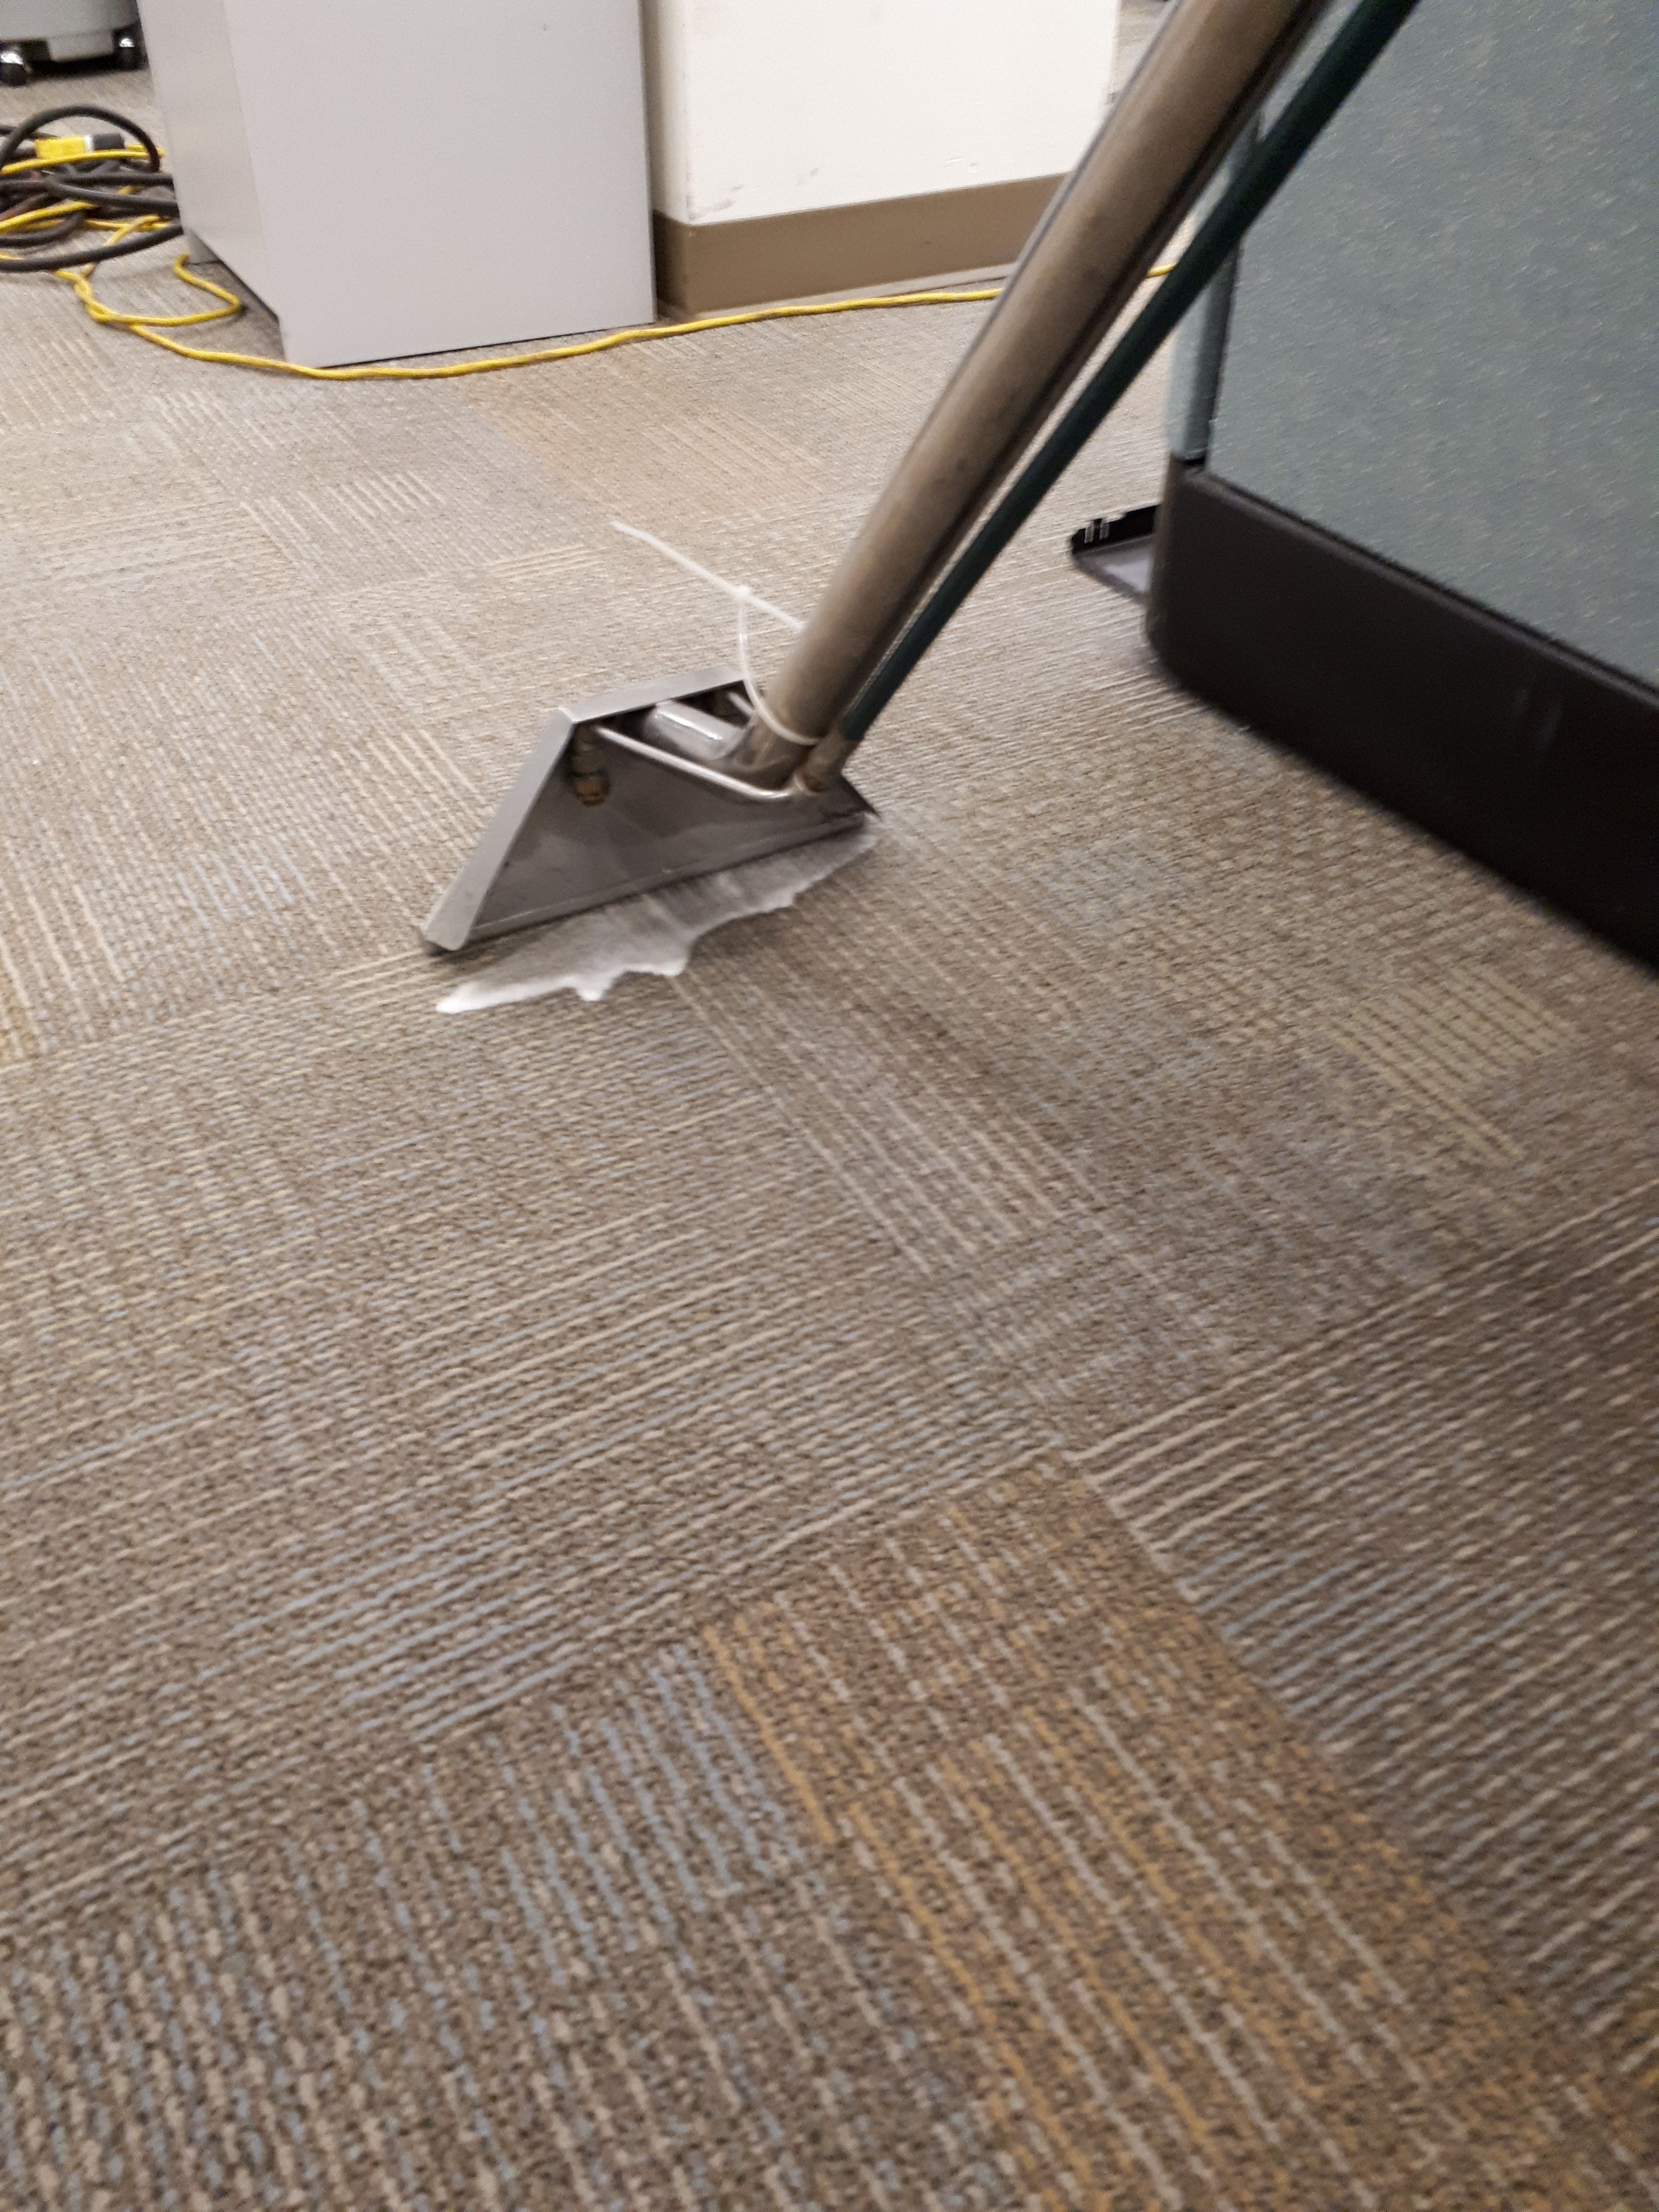 0ttawa Carpet Cleaning Steam Clean Carpet How To Clean Carpet Cleaning Upholstery